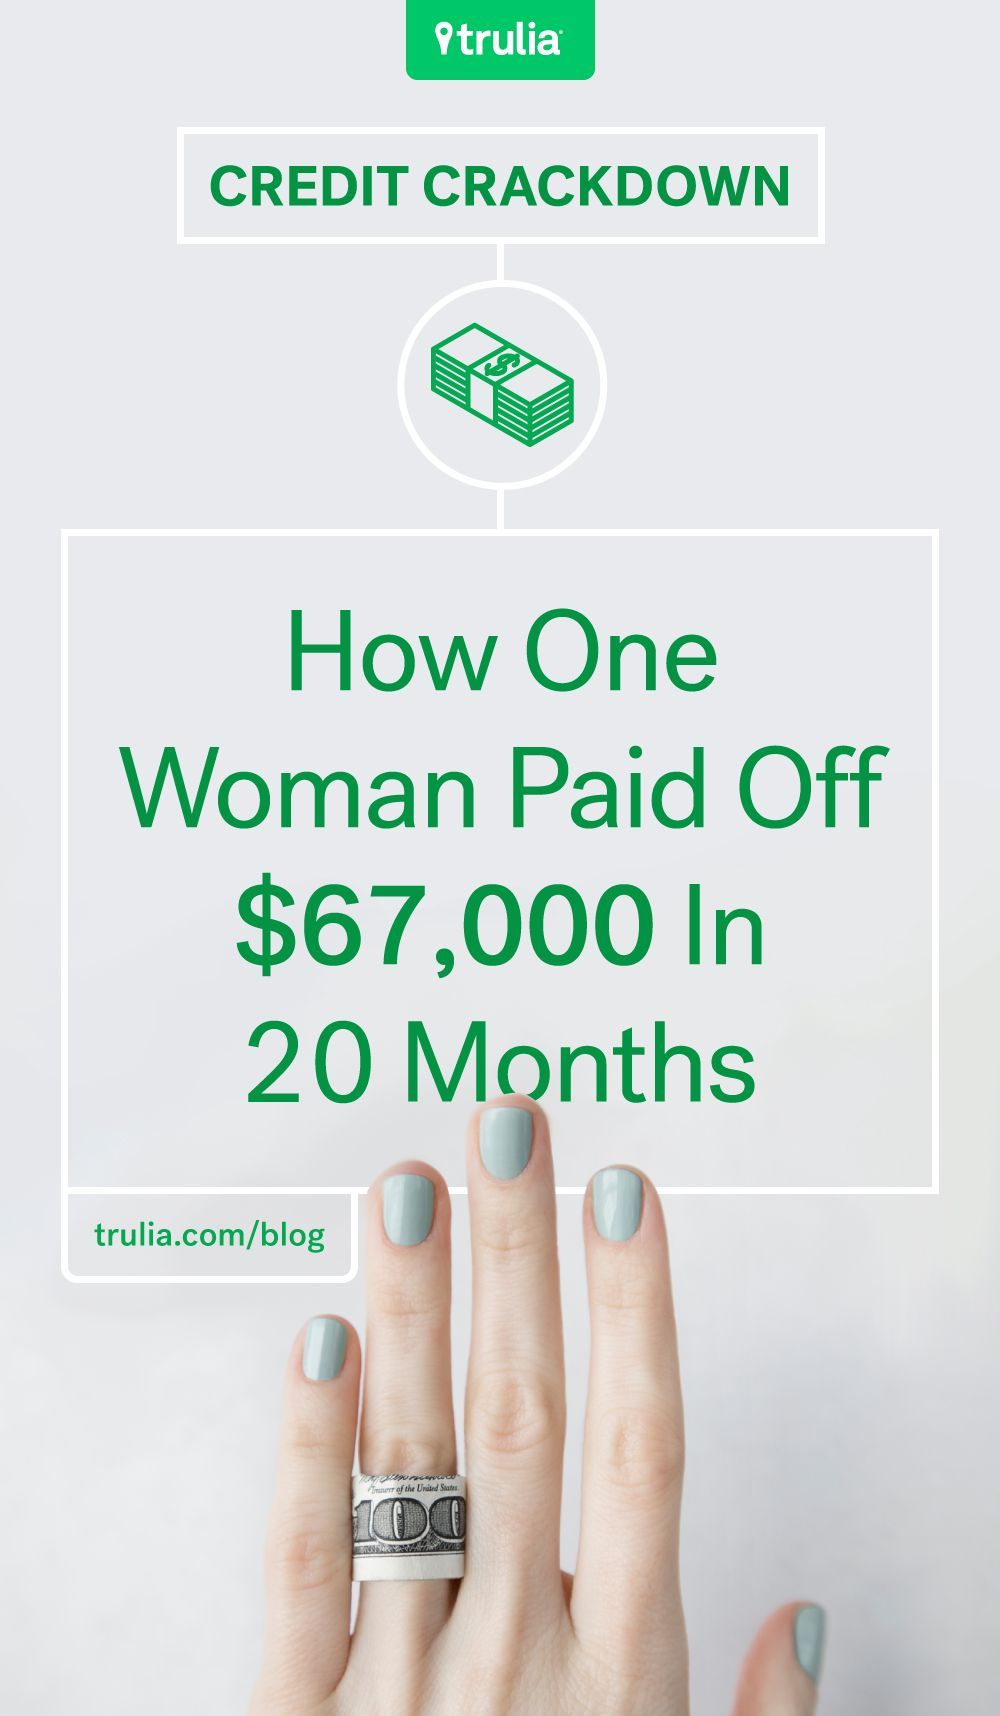 How to pay off debt quickly money matters trulia blog